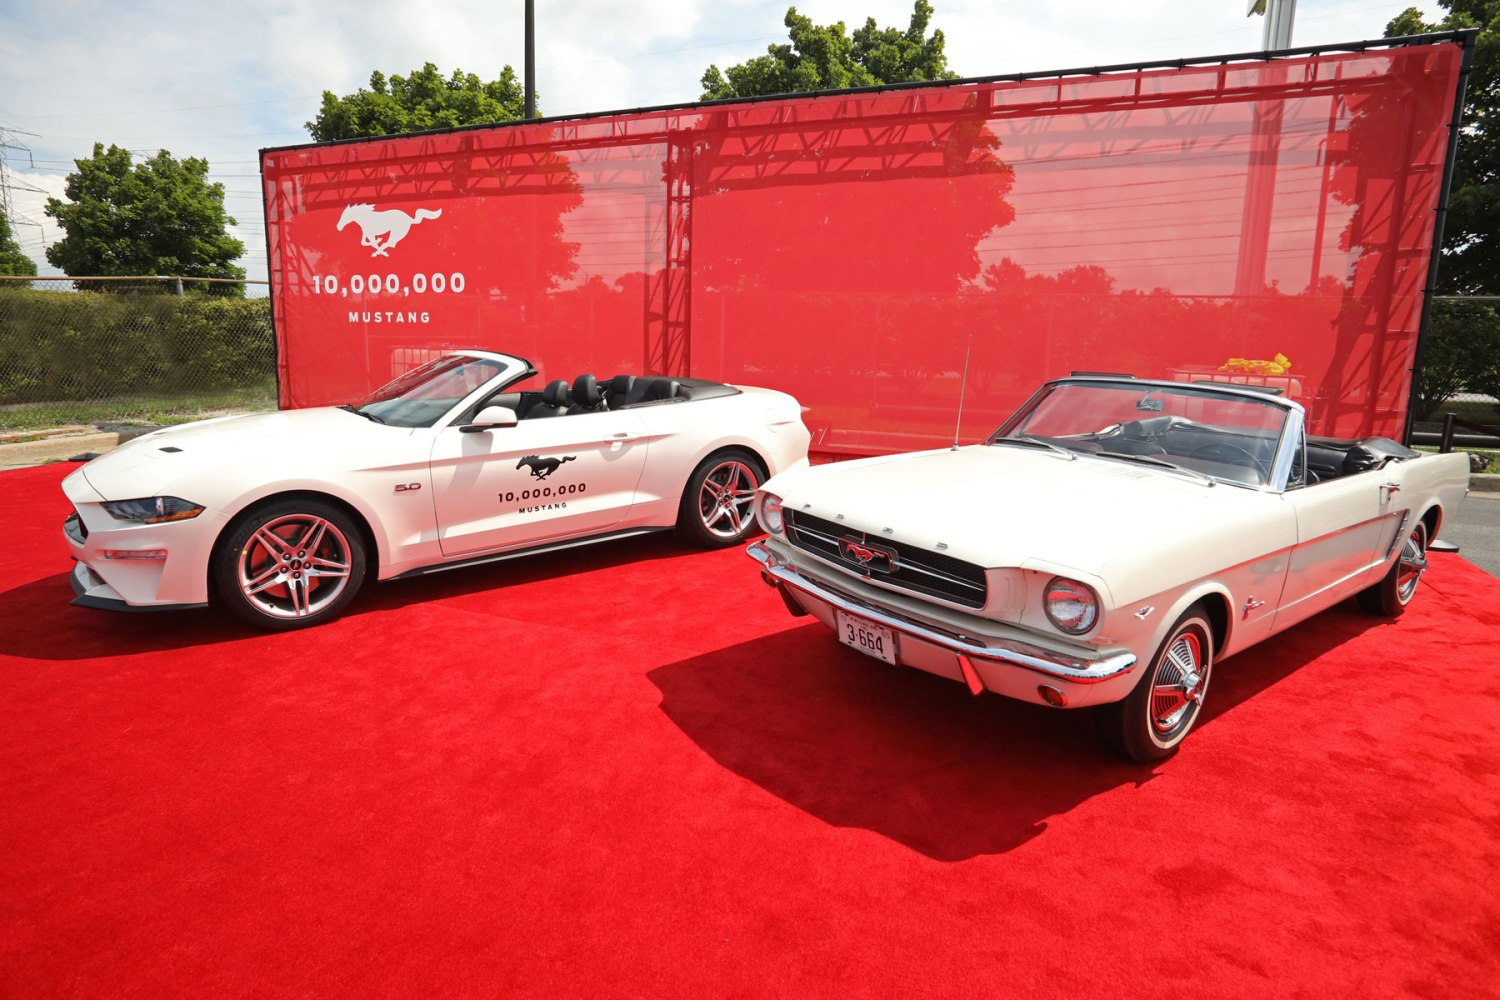 First meets 10 millionth Mustang